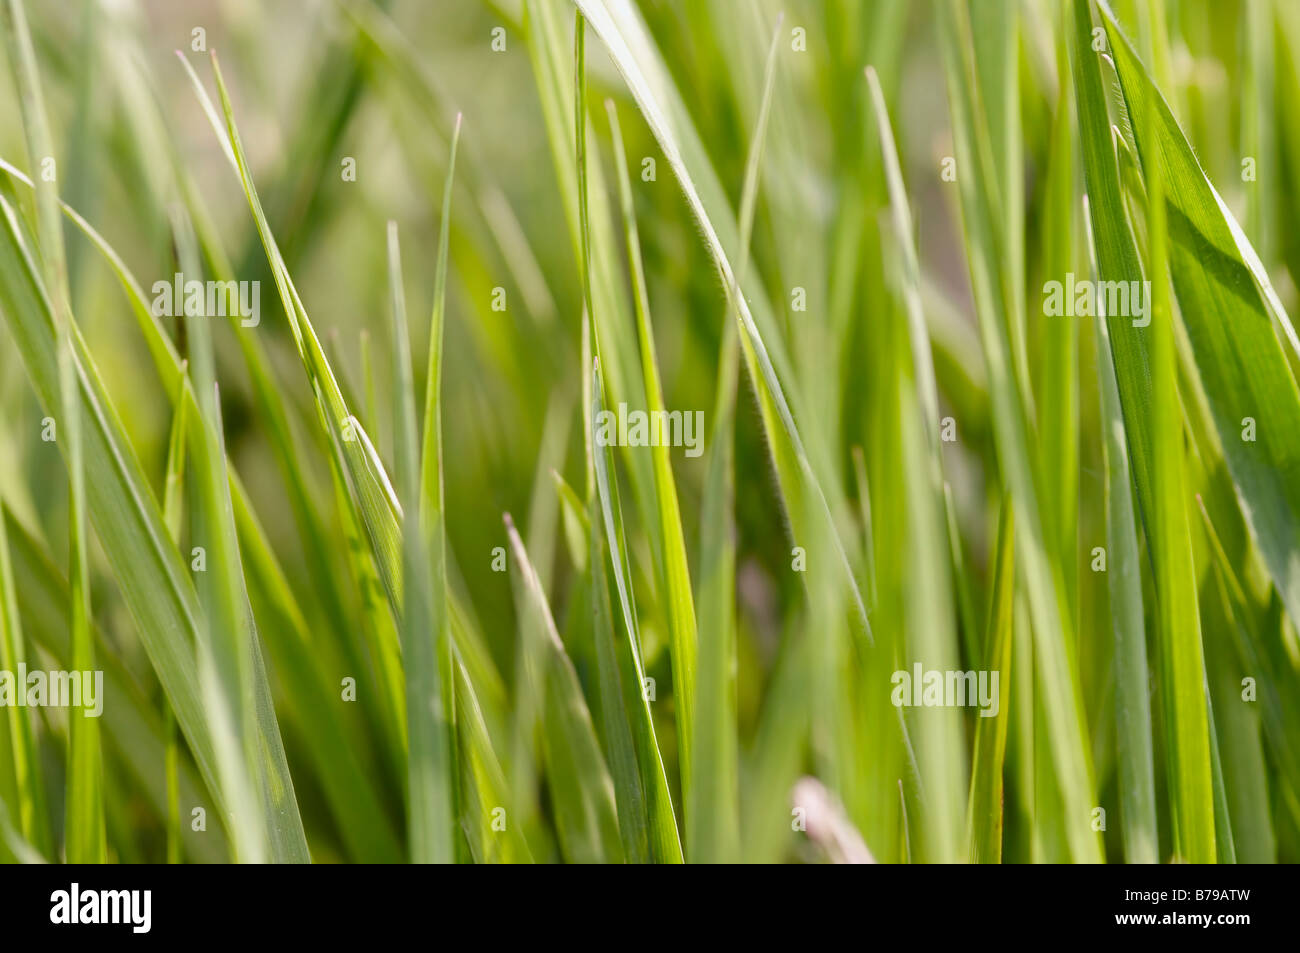 Abstract shot of the spring grass  - close-up - background - Stock Image